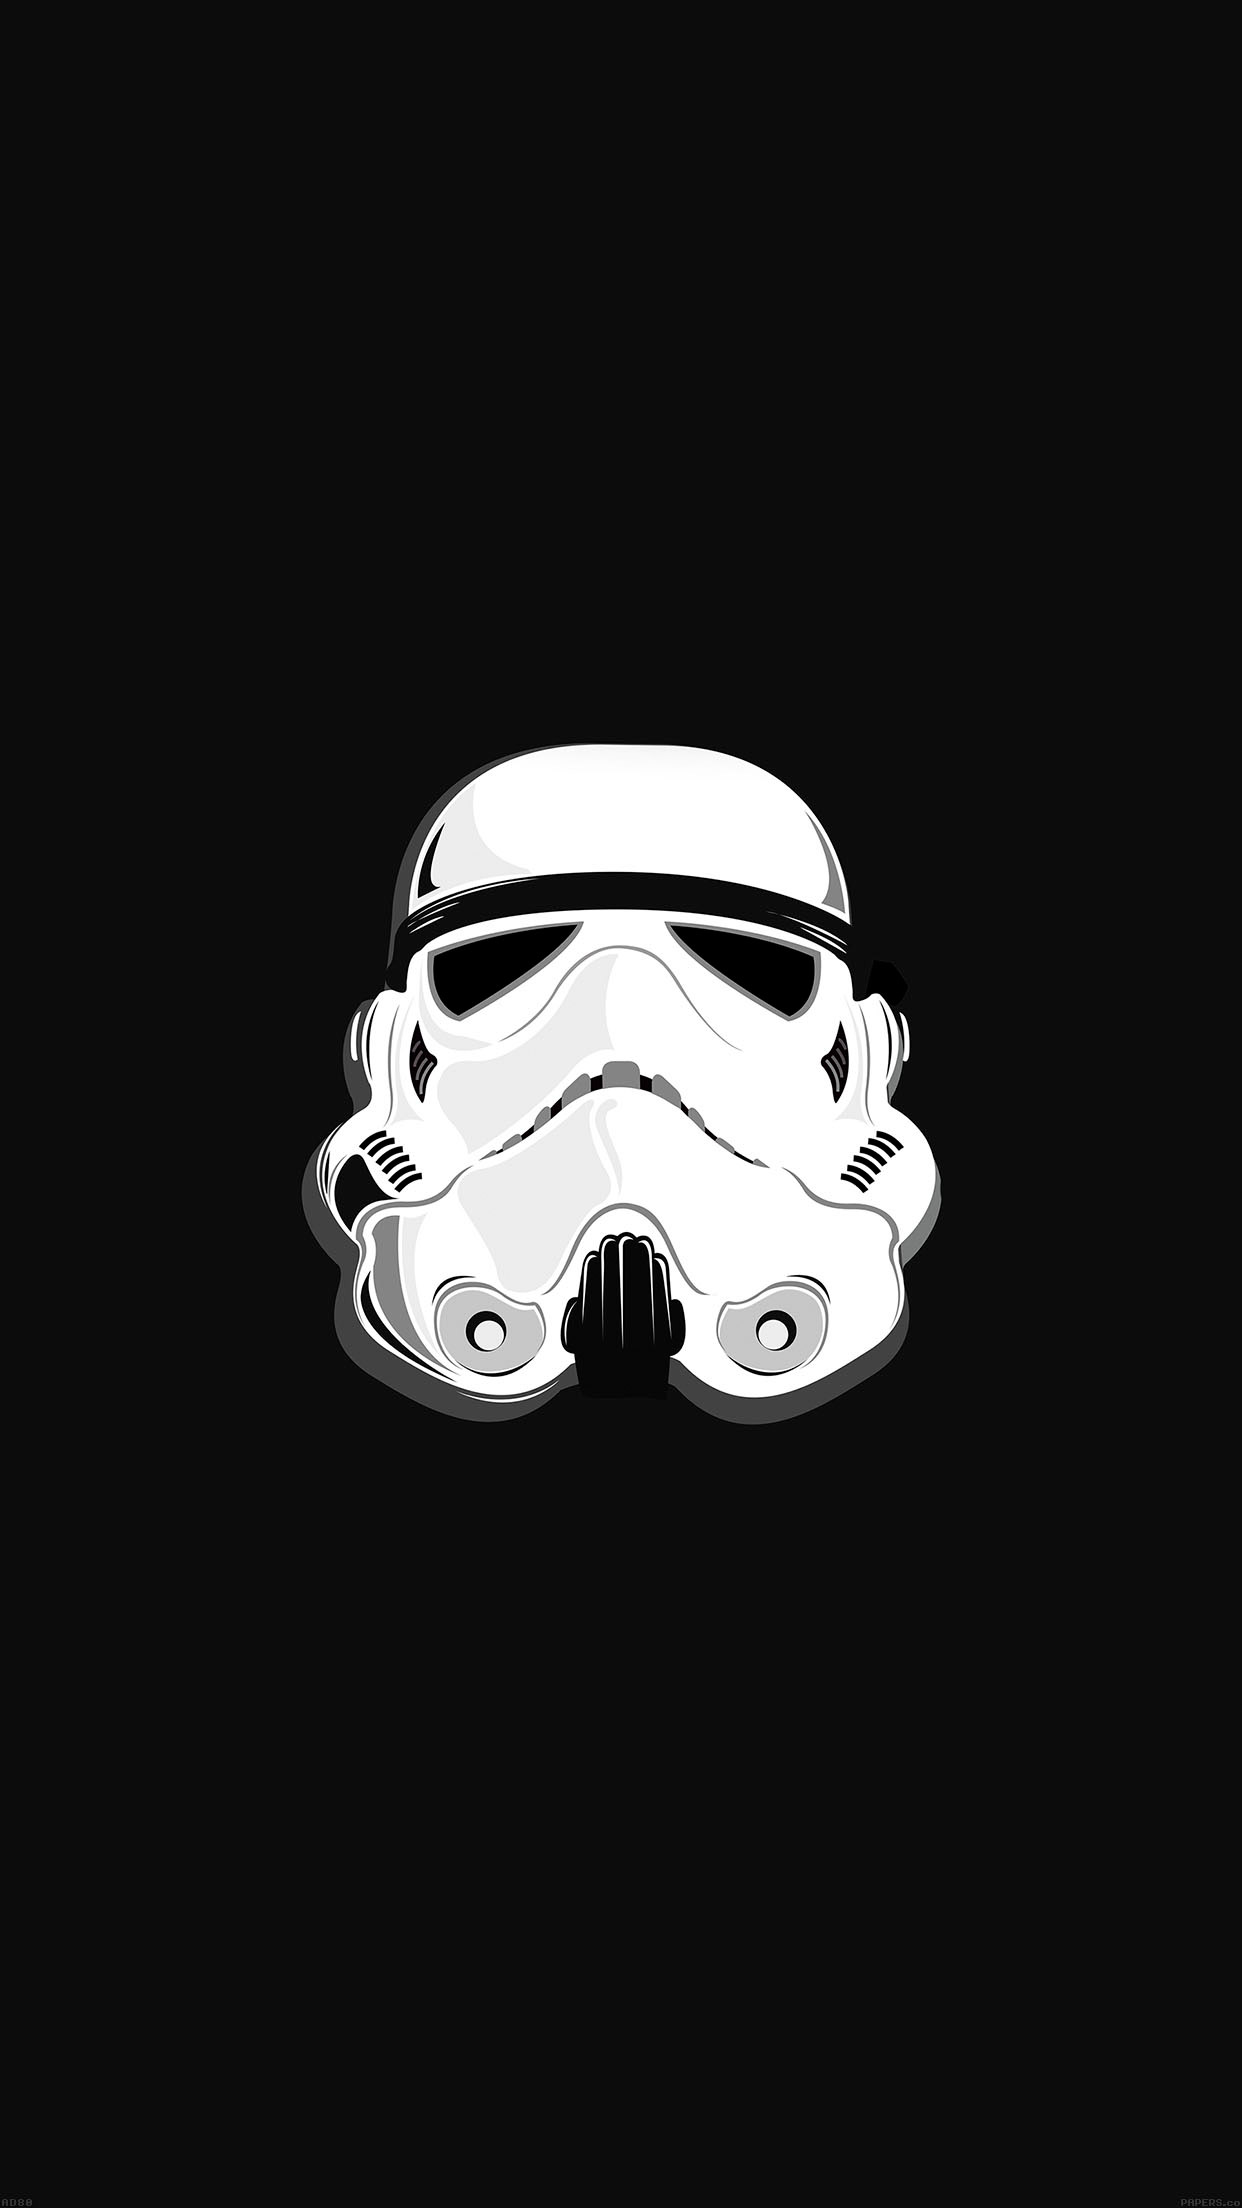 storm-trooper-starwars-illust-34-iphone6-plus-wallpaper